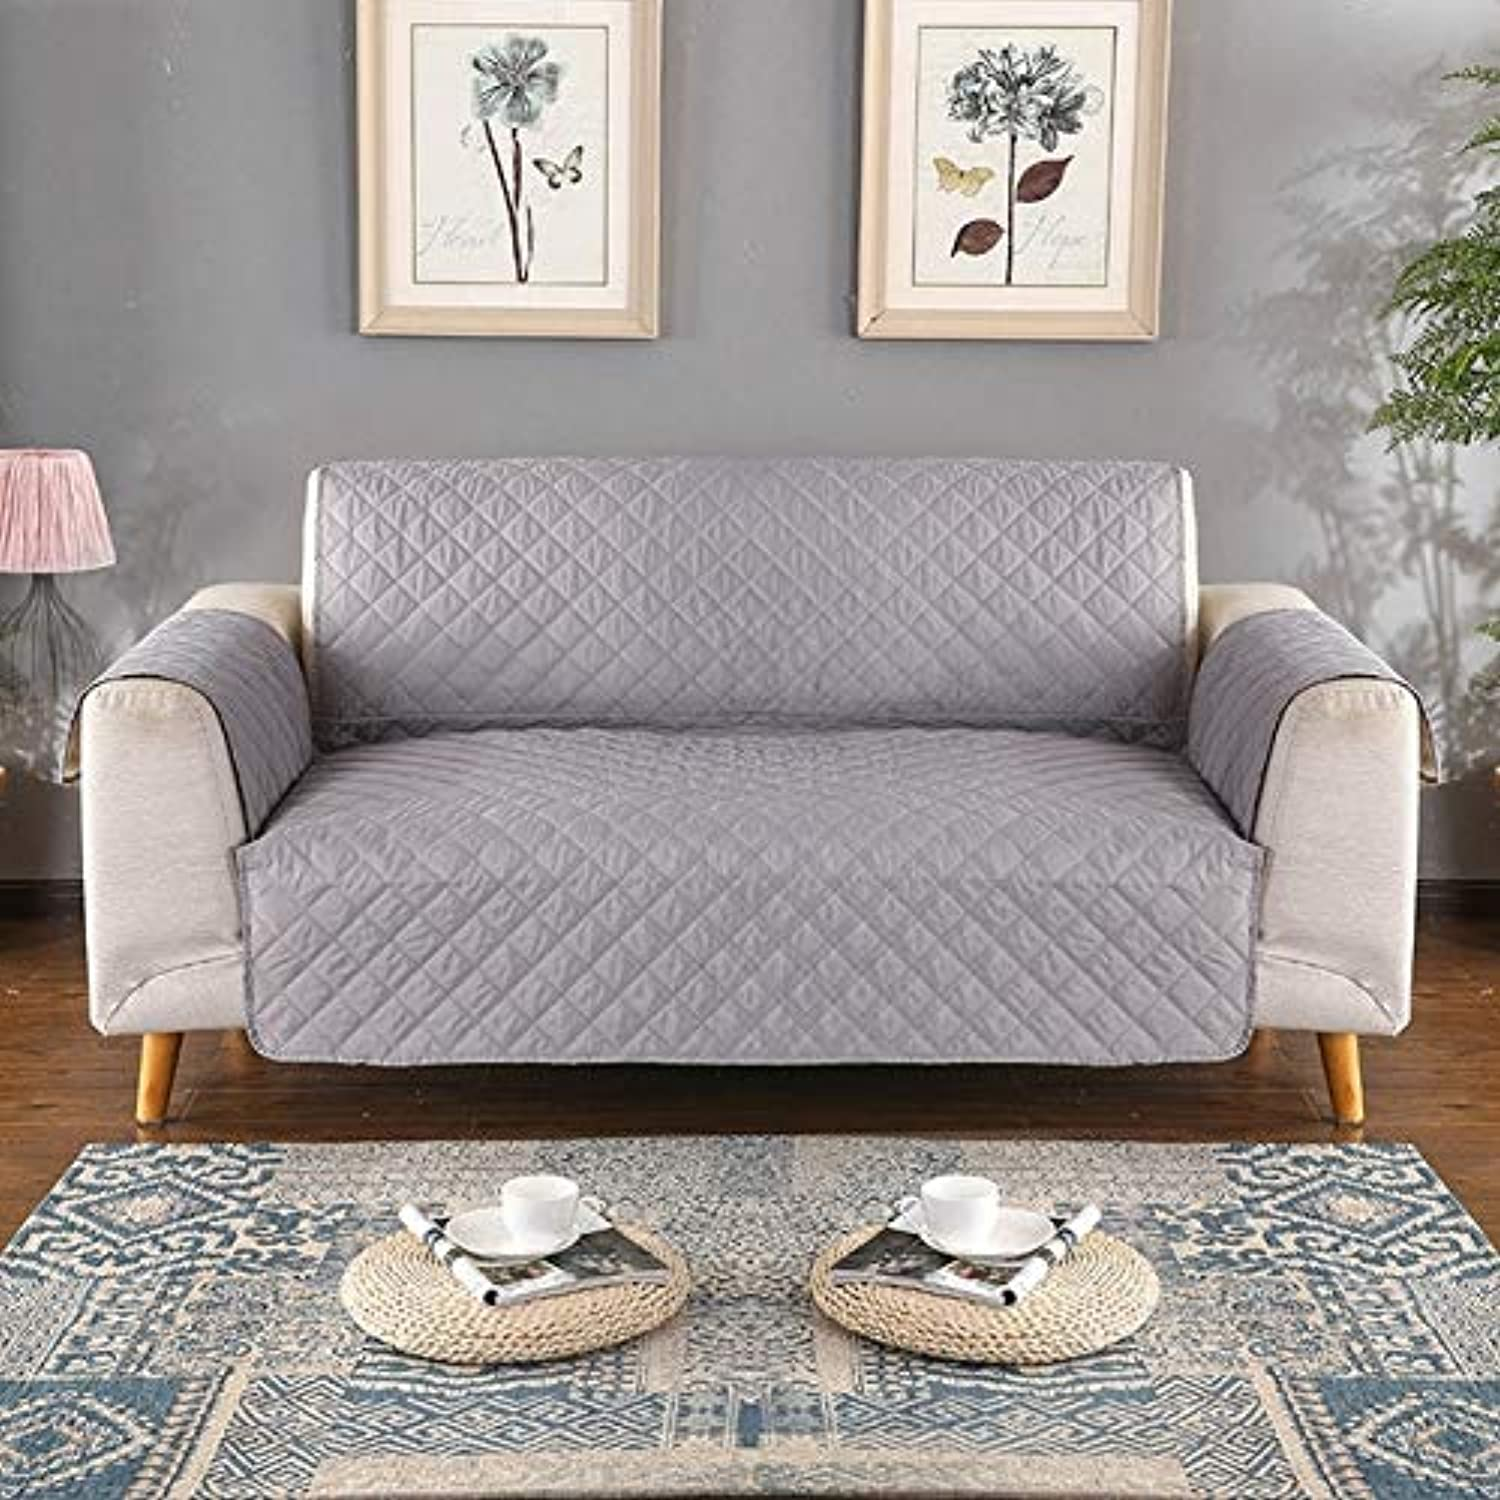 Farmerly Waterproof oilproof Sofa Cover Washable Removable Towel Armrest Couch Covers Slipcovers Couch Dog Pets Single Two Three Seater   Grey, M 116x190cm